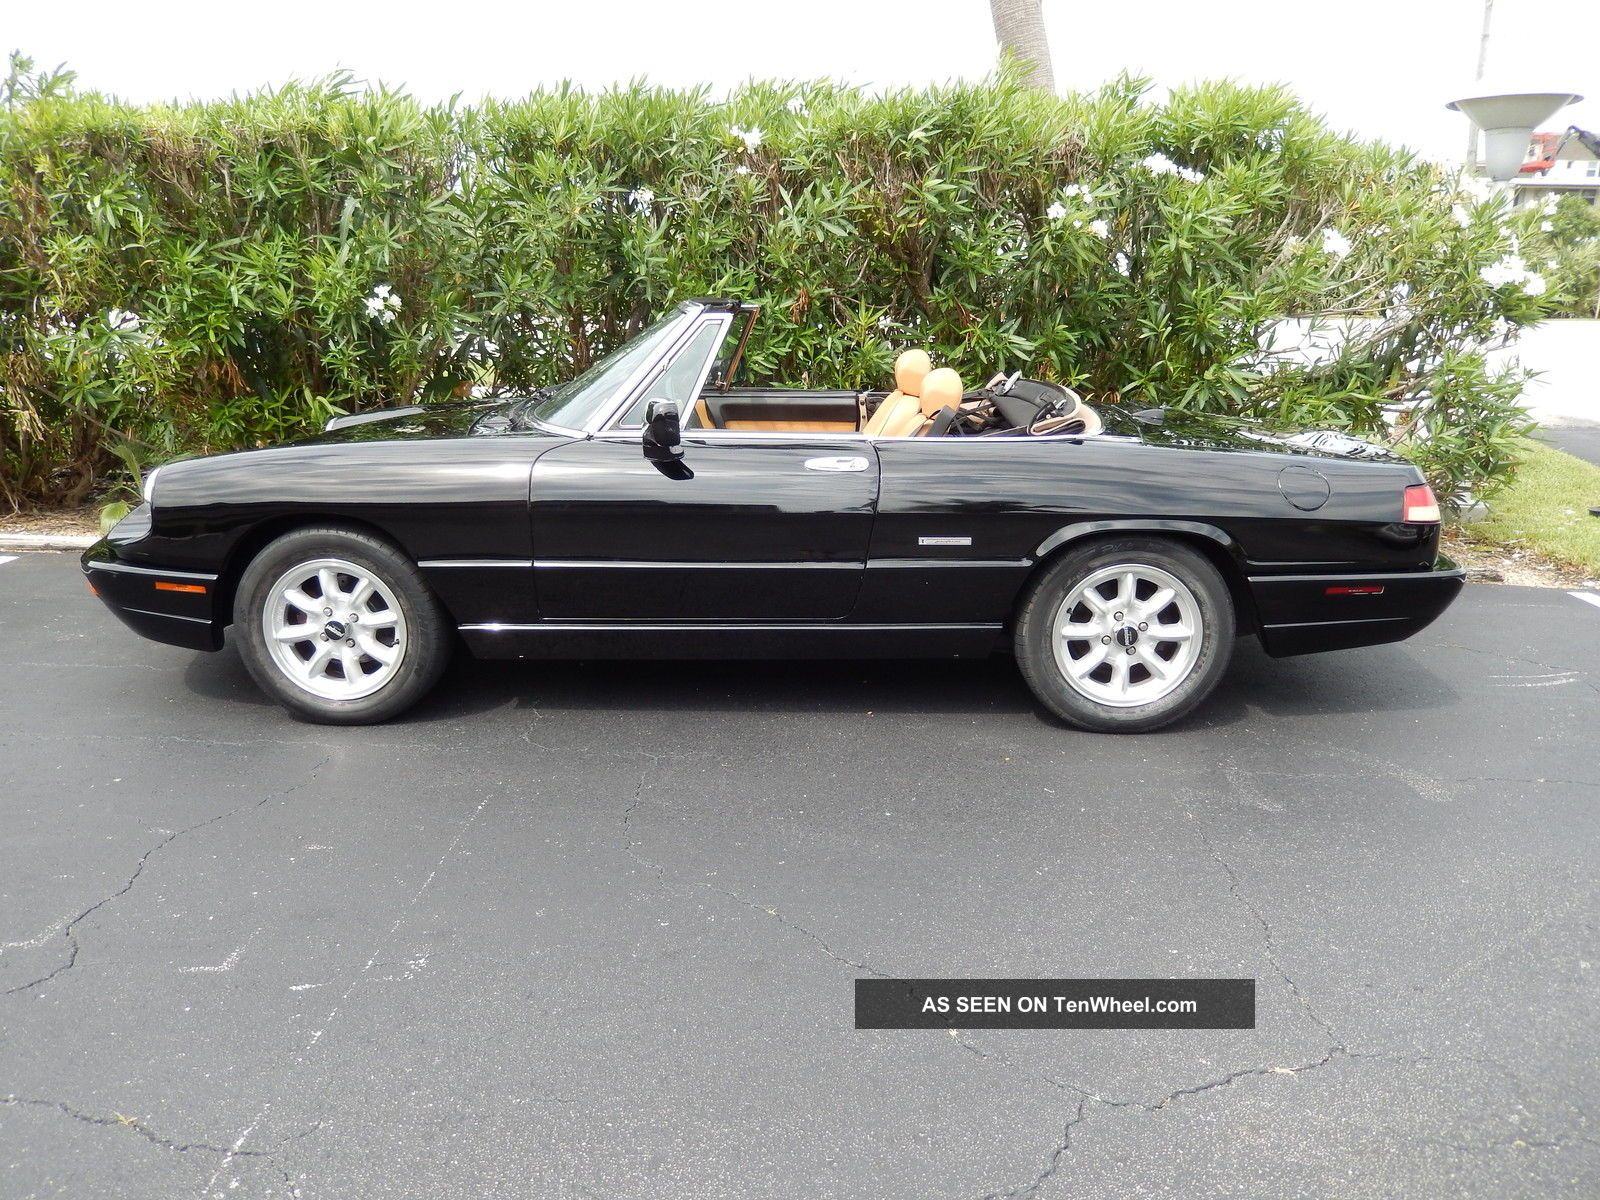 1991 Alfa Romeo Spider Black With Tan And All Accessories Work As They Should. Spider photo